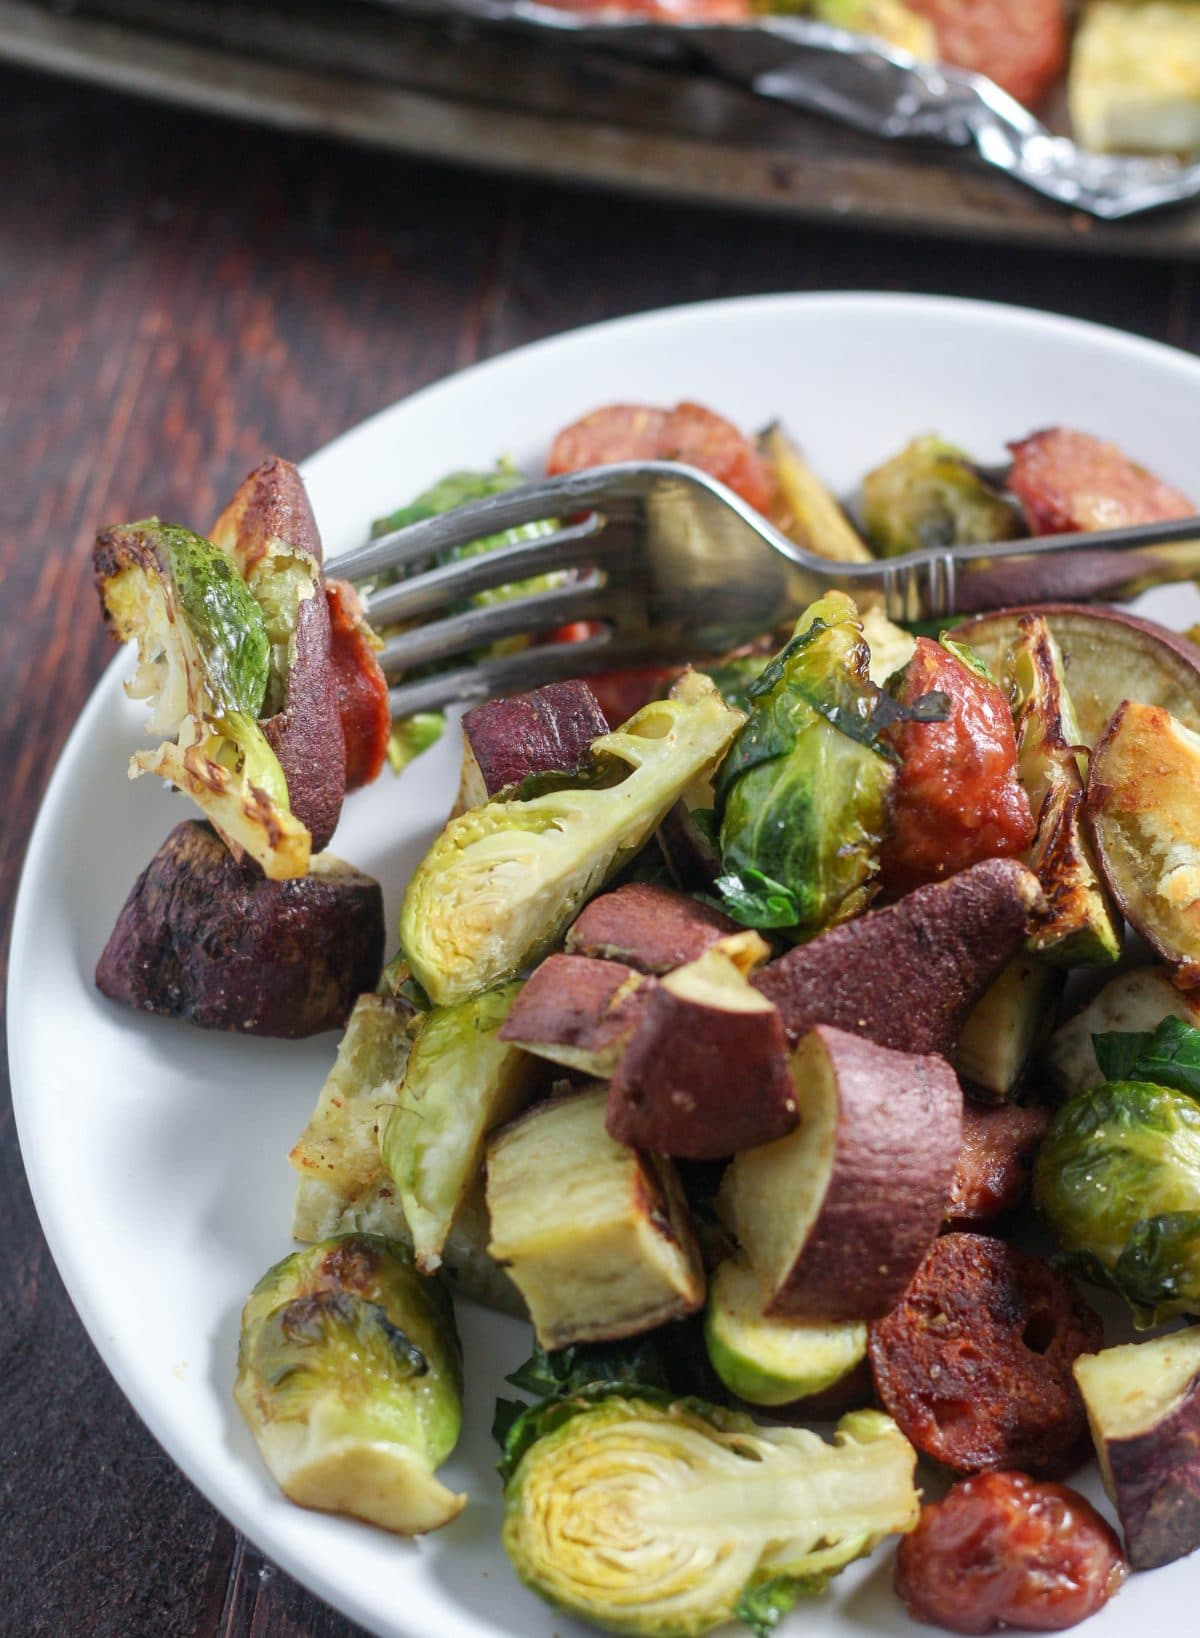 Sheet Pan Bratwurst Sweet Potato and Brussel Sprouts